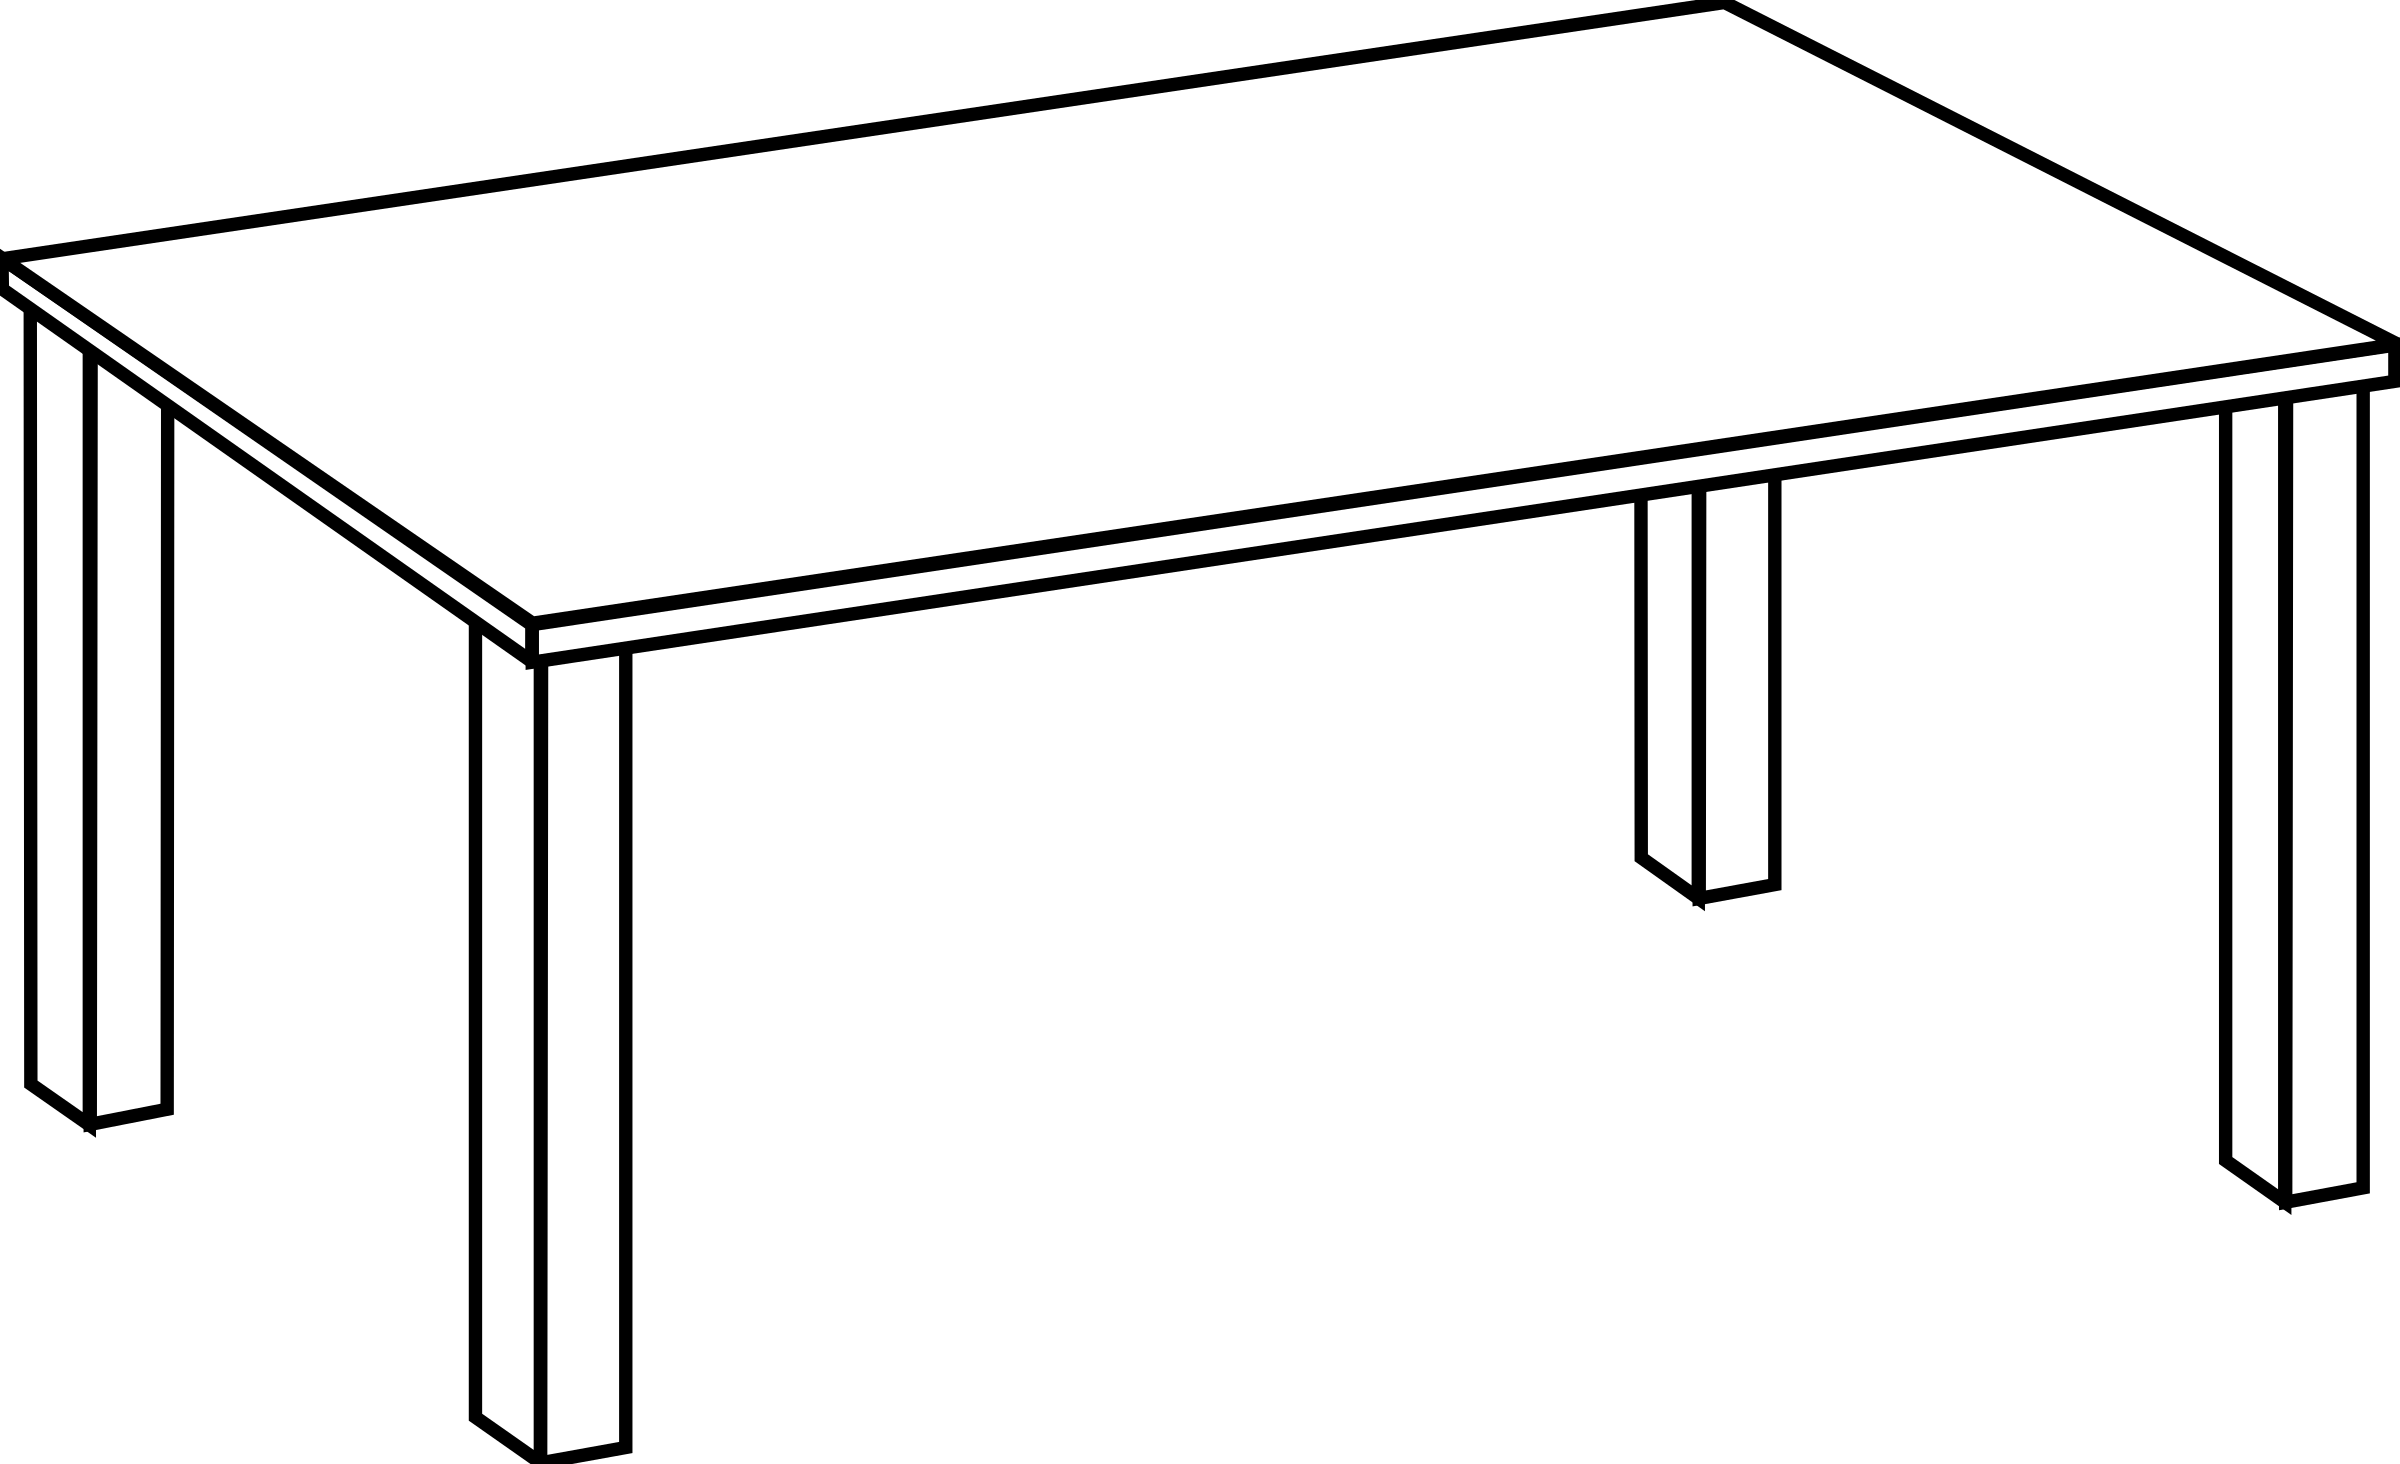 Download And Share Clipart About Picnic Table Clipart Black And White Clipartfest Table White And Black Find More High Quality Table Wooden Tables Line Art